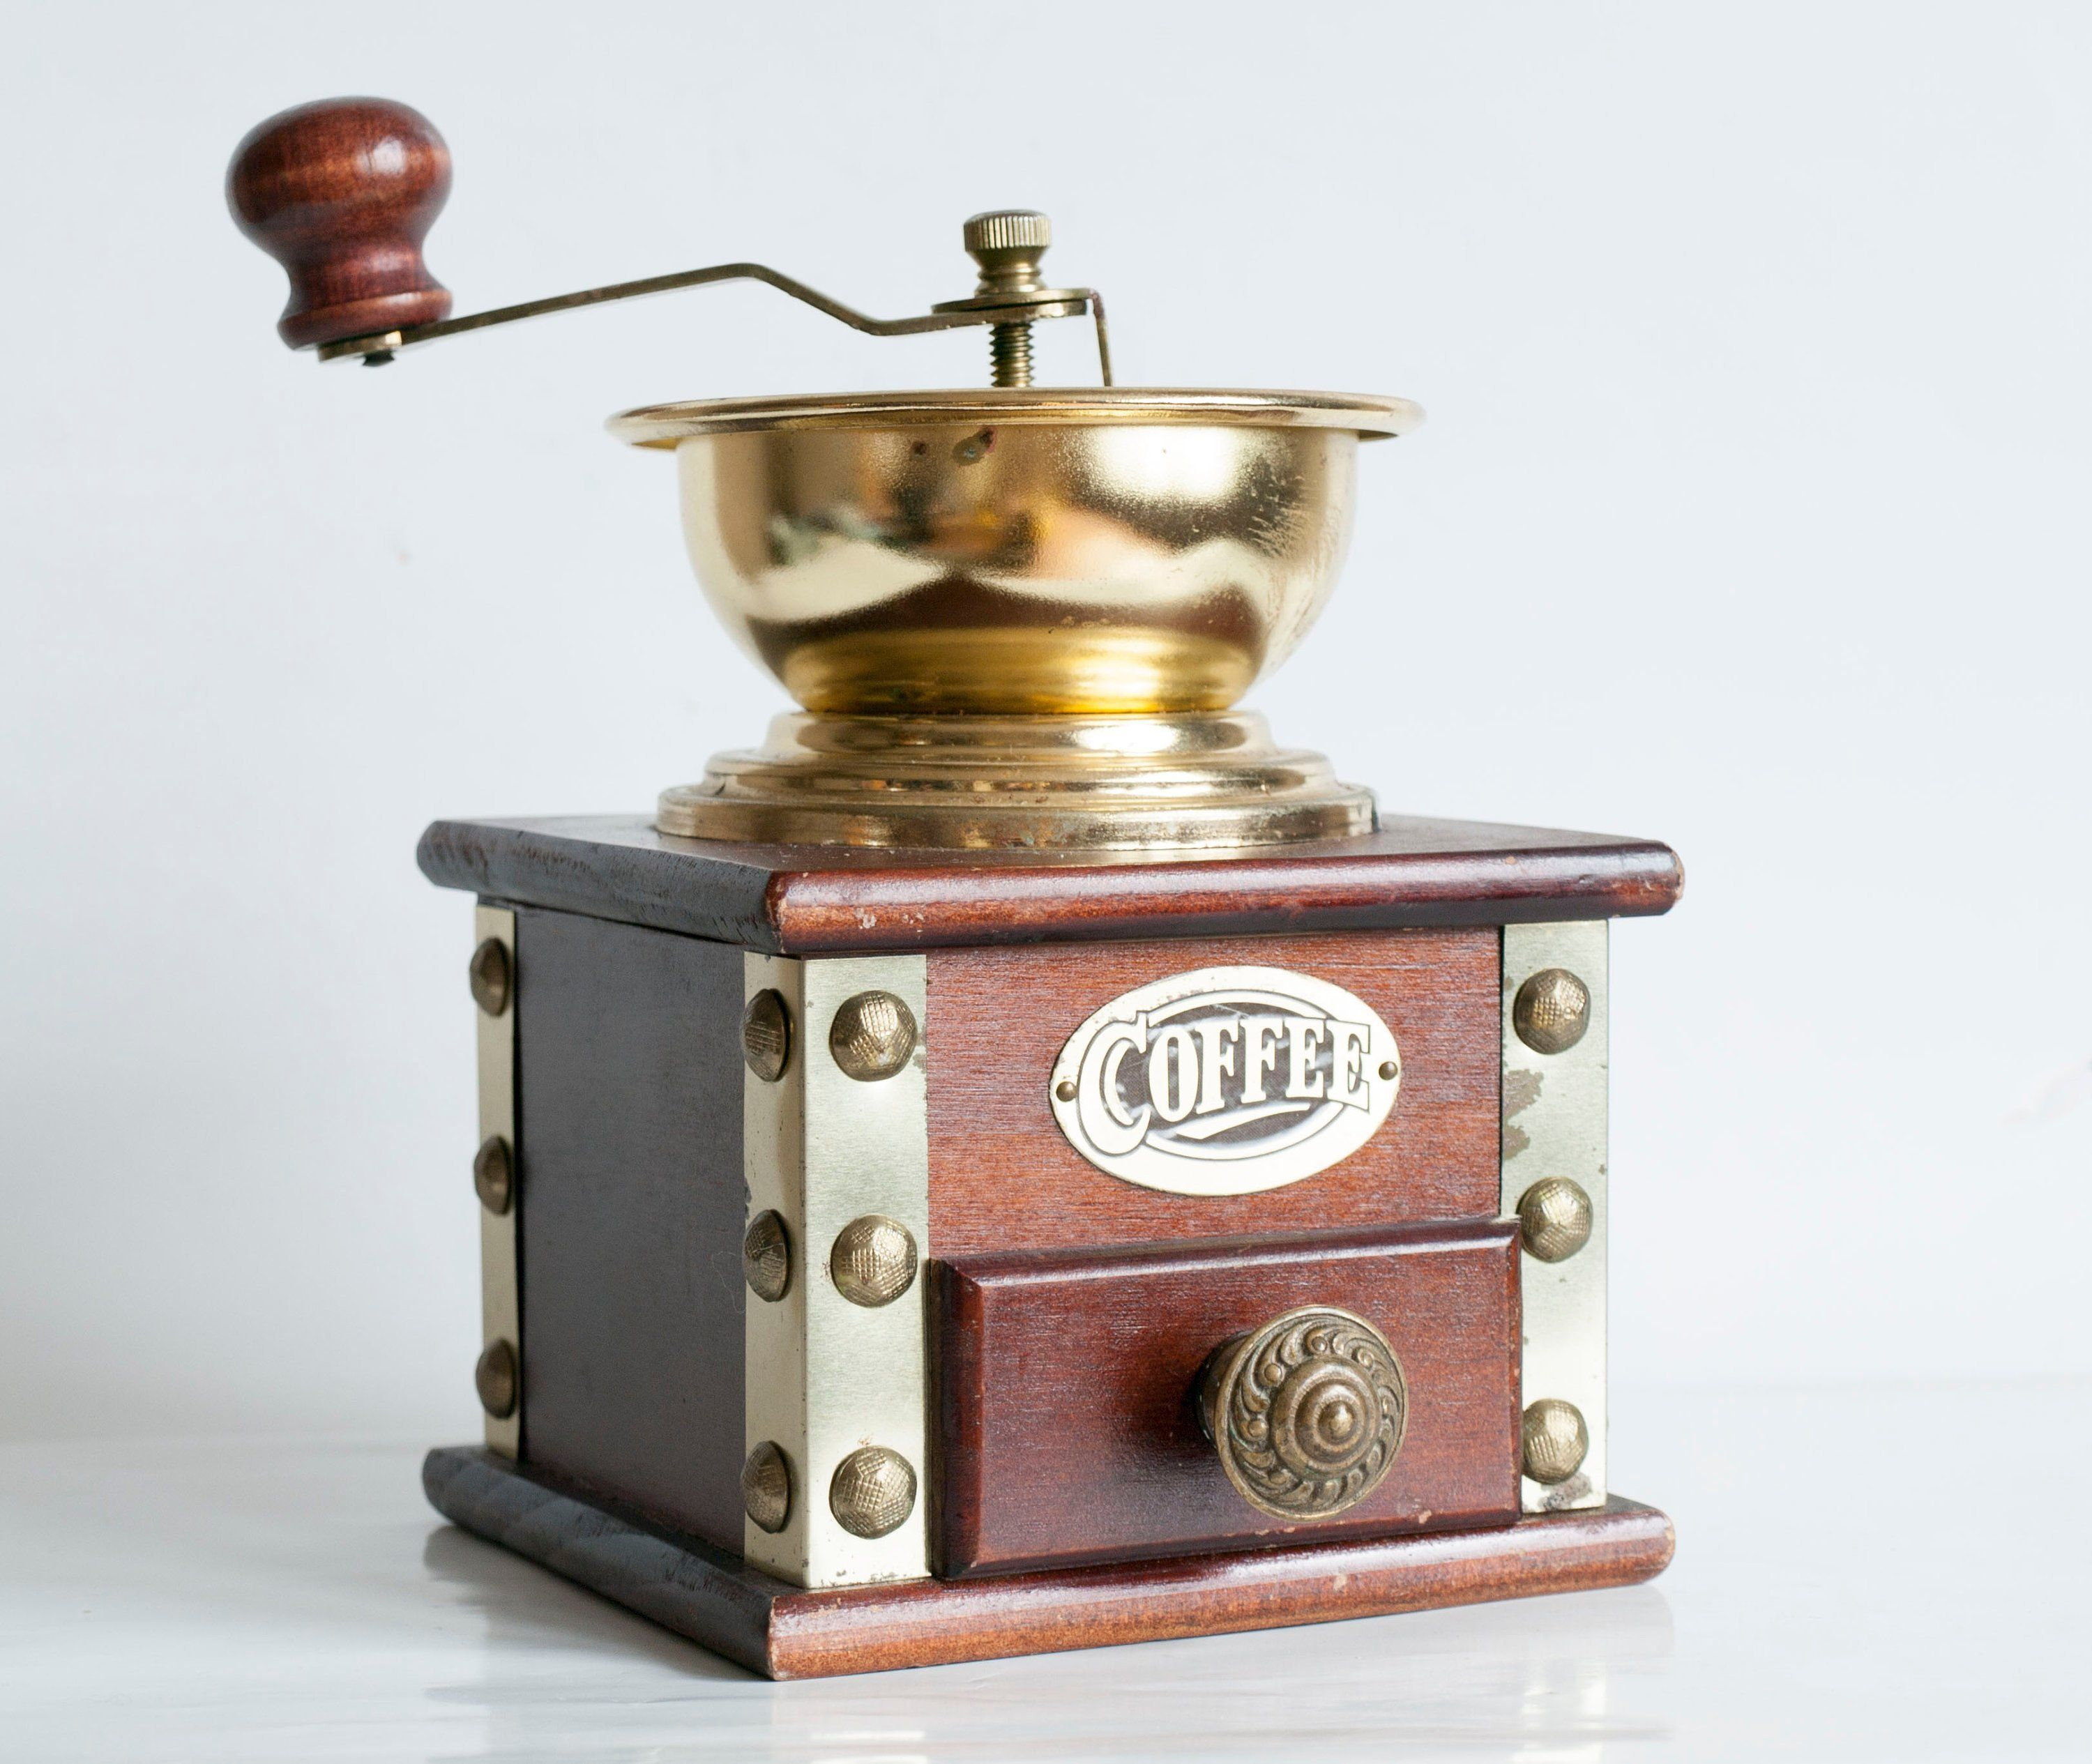 French metal coffee grinder French Kitchen decor